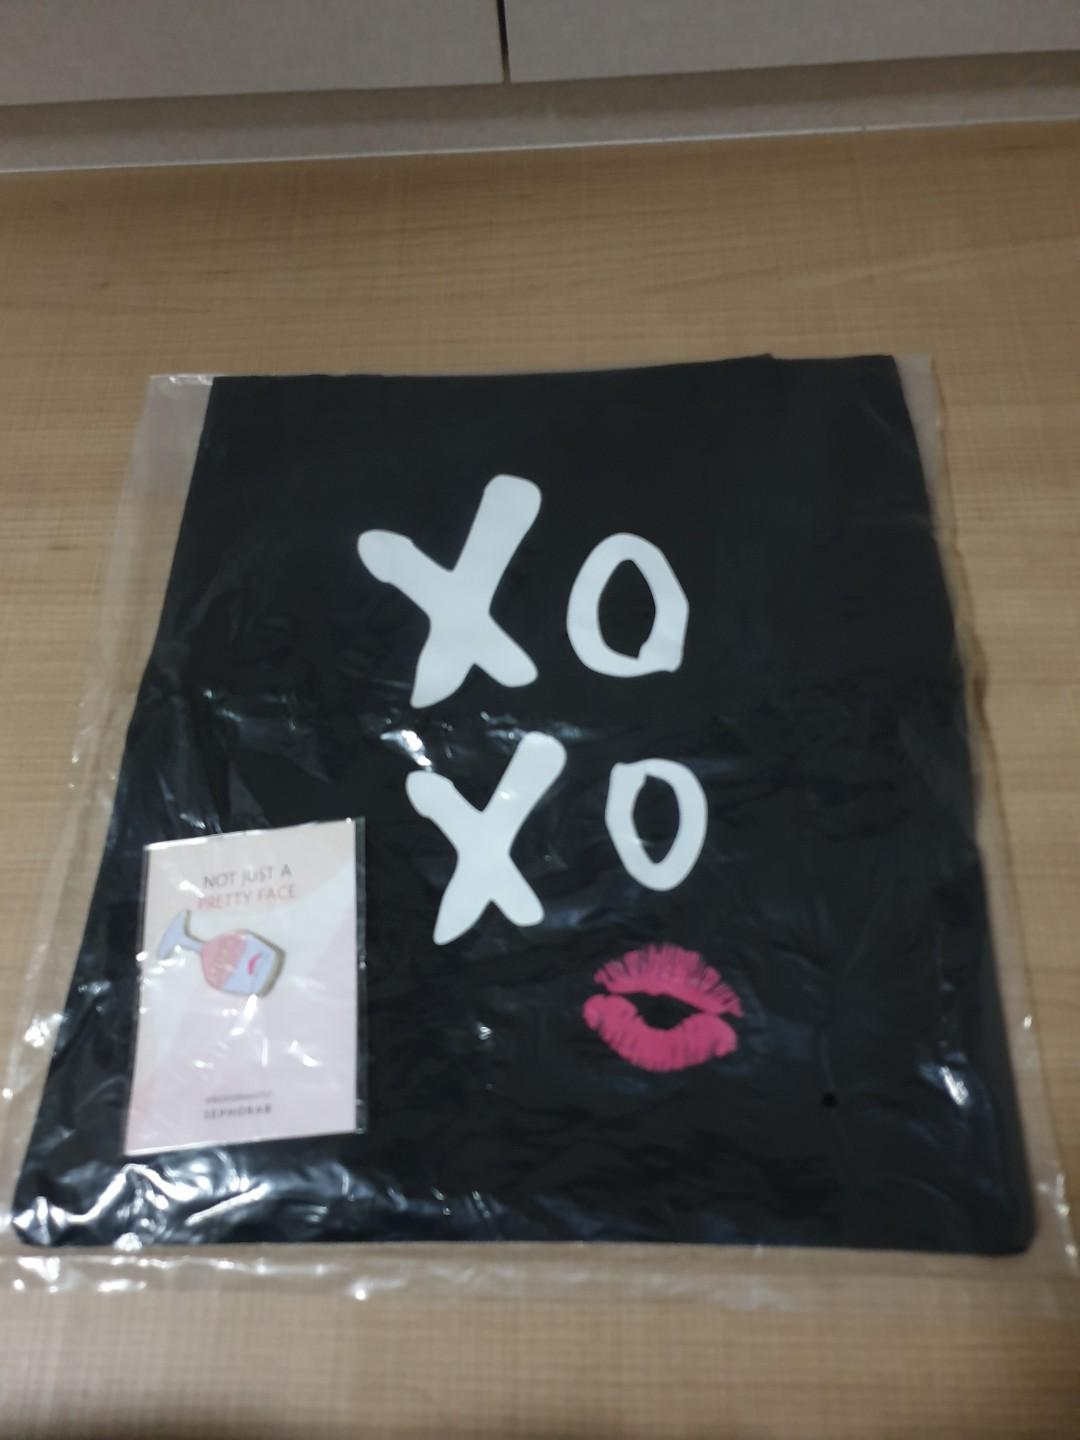 In text meaning xoxo XOXO meaning